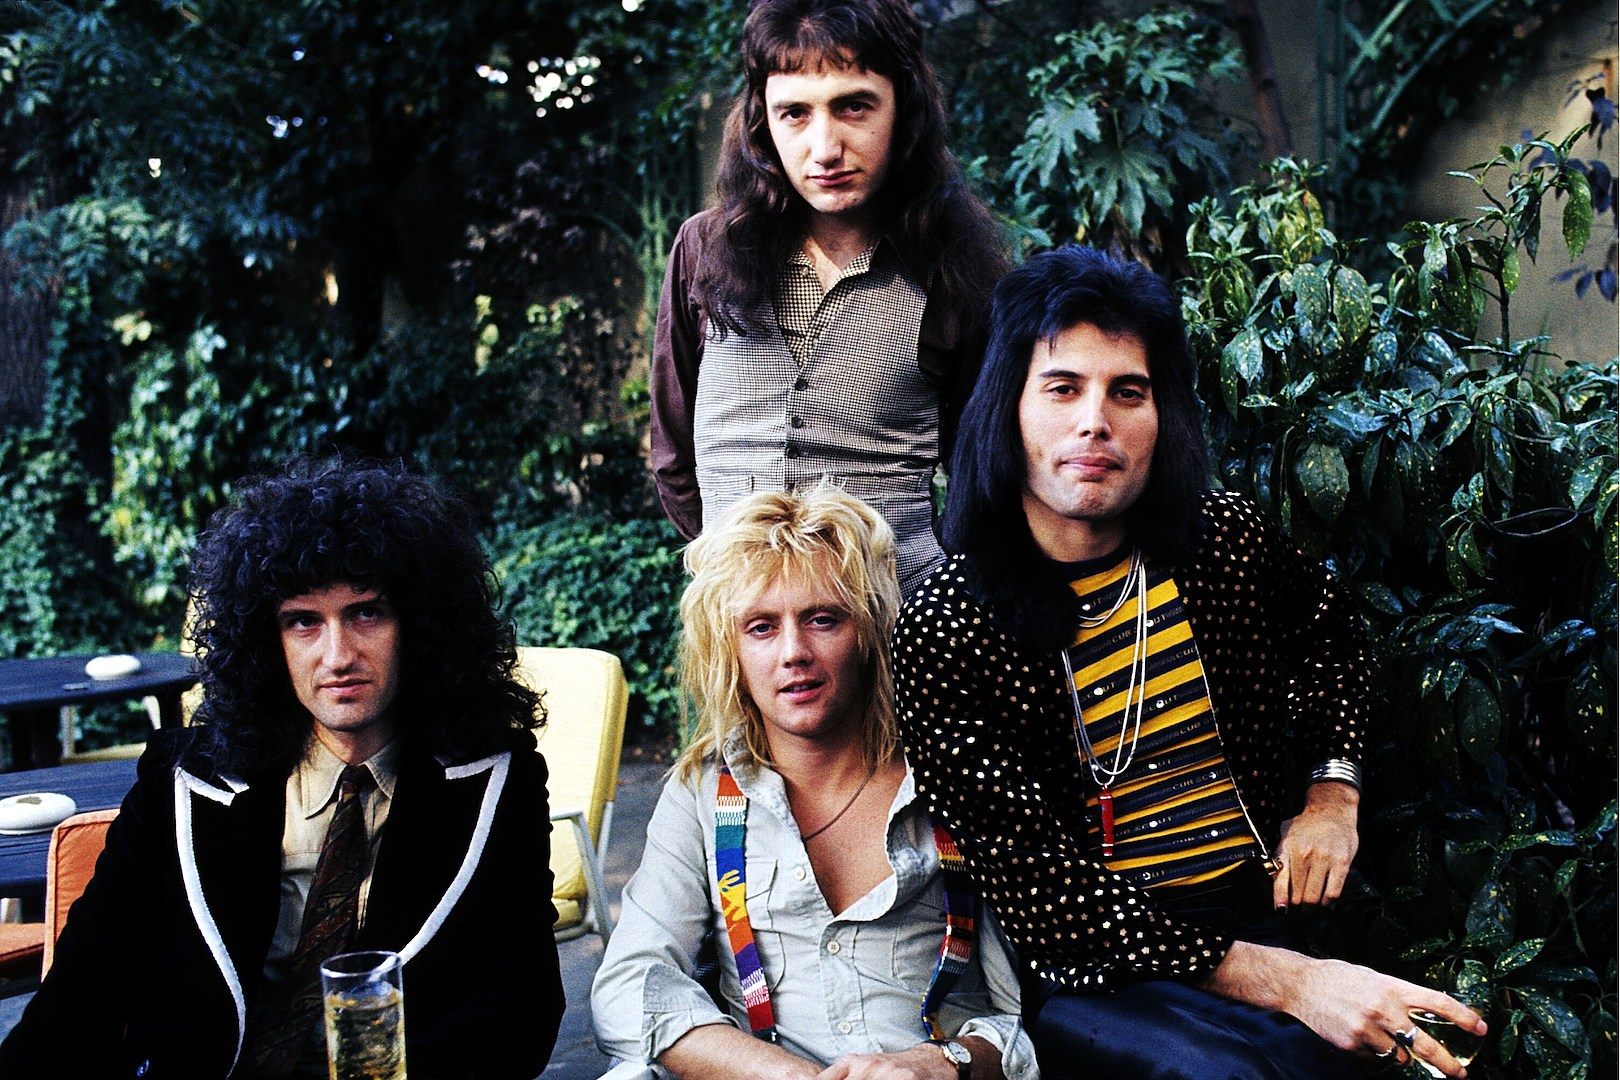 Queen's 'Bohemian Rhapsody' Video Has One Billion YouTube Views